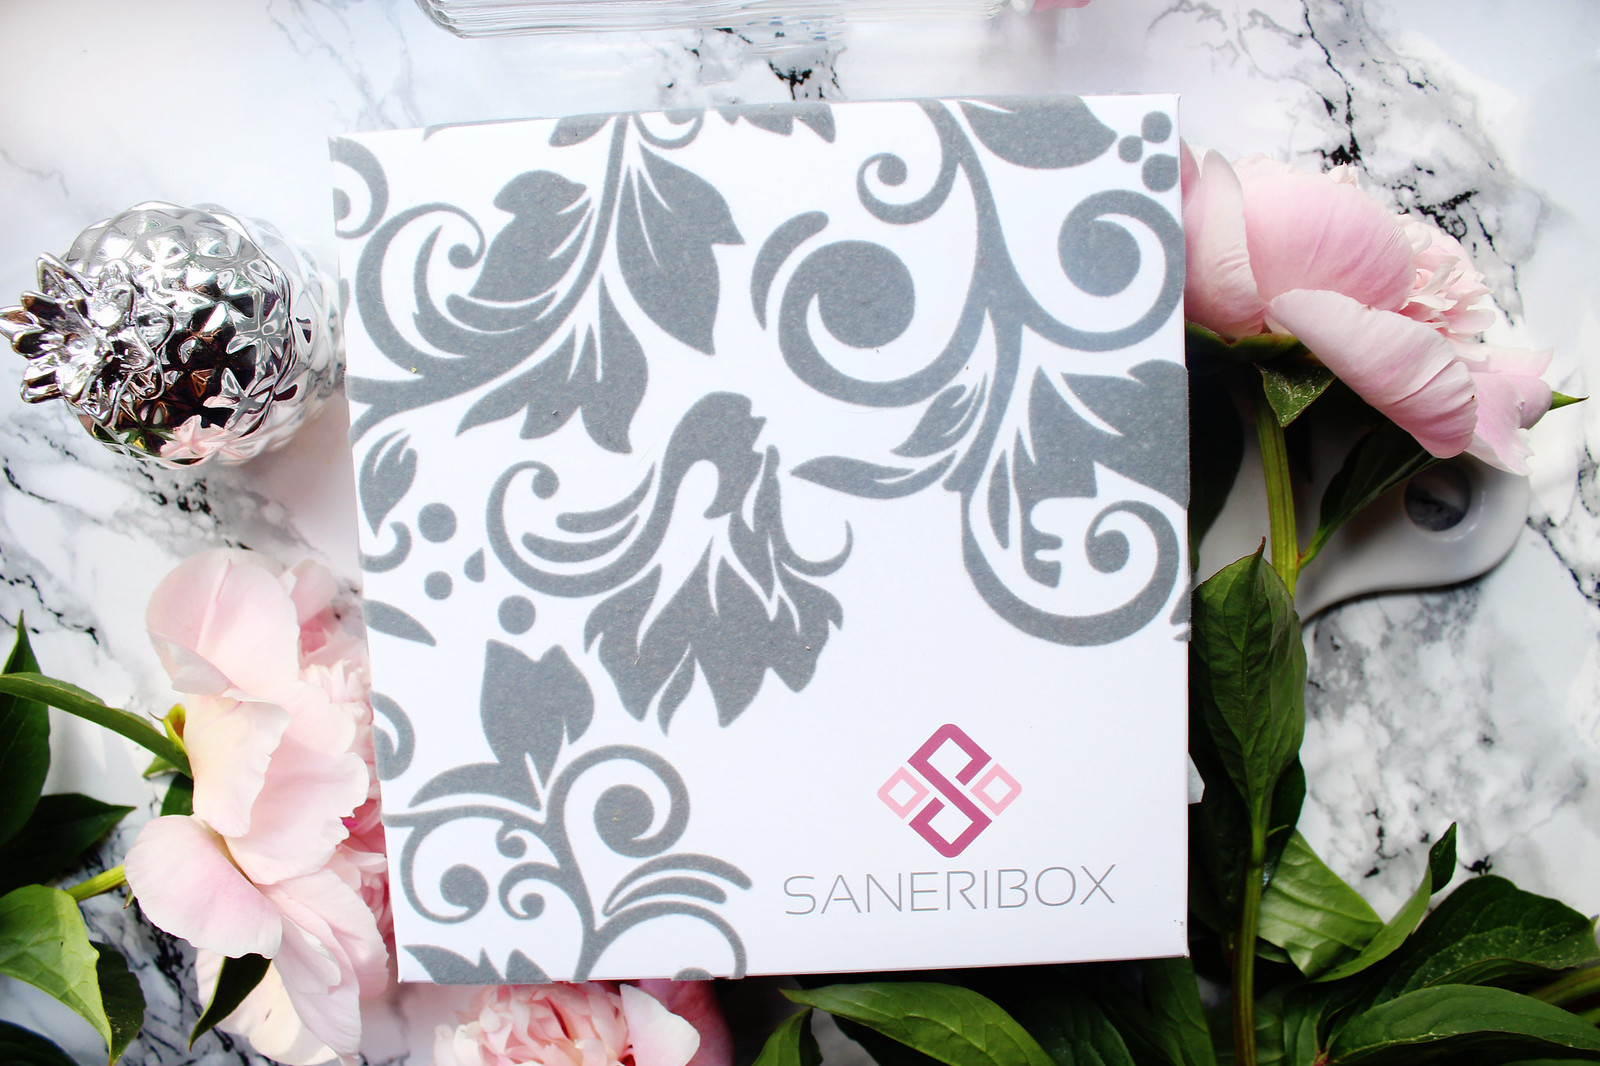 SANERIBOX unboxing